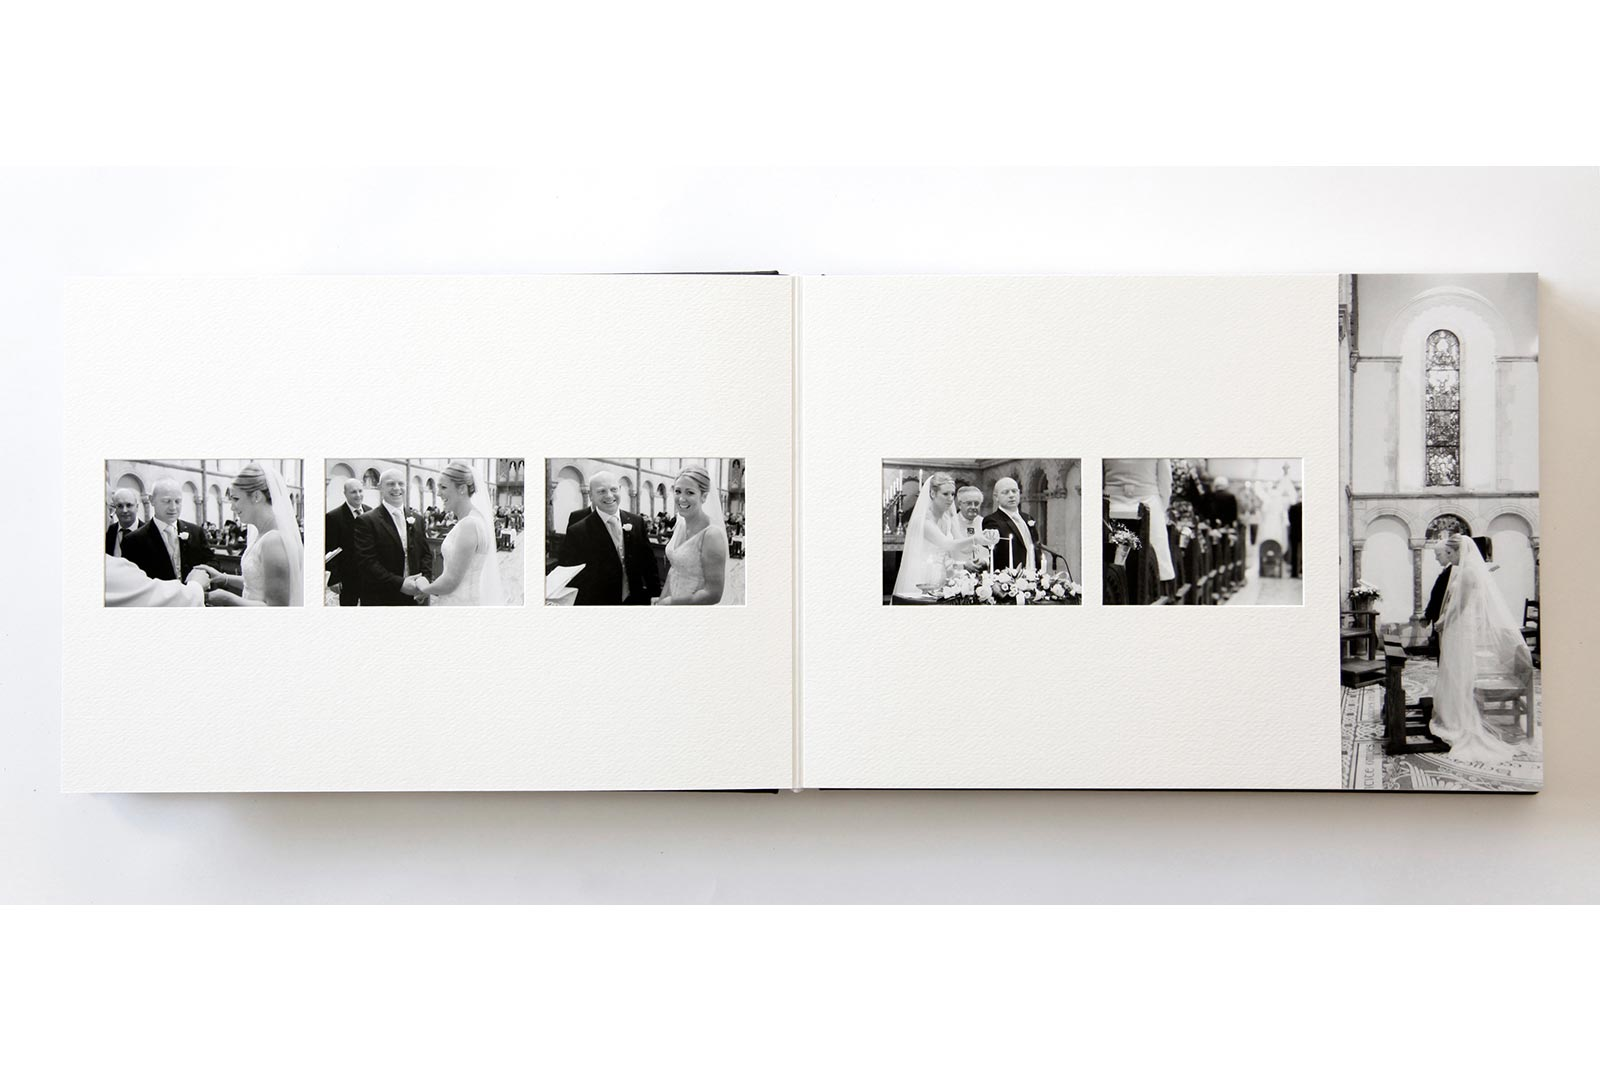 Duo Queensberry wedding album, with image running to the edge of the page